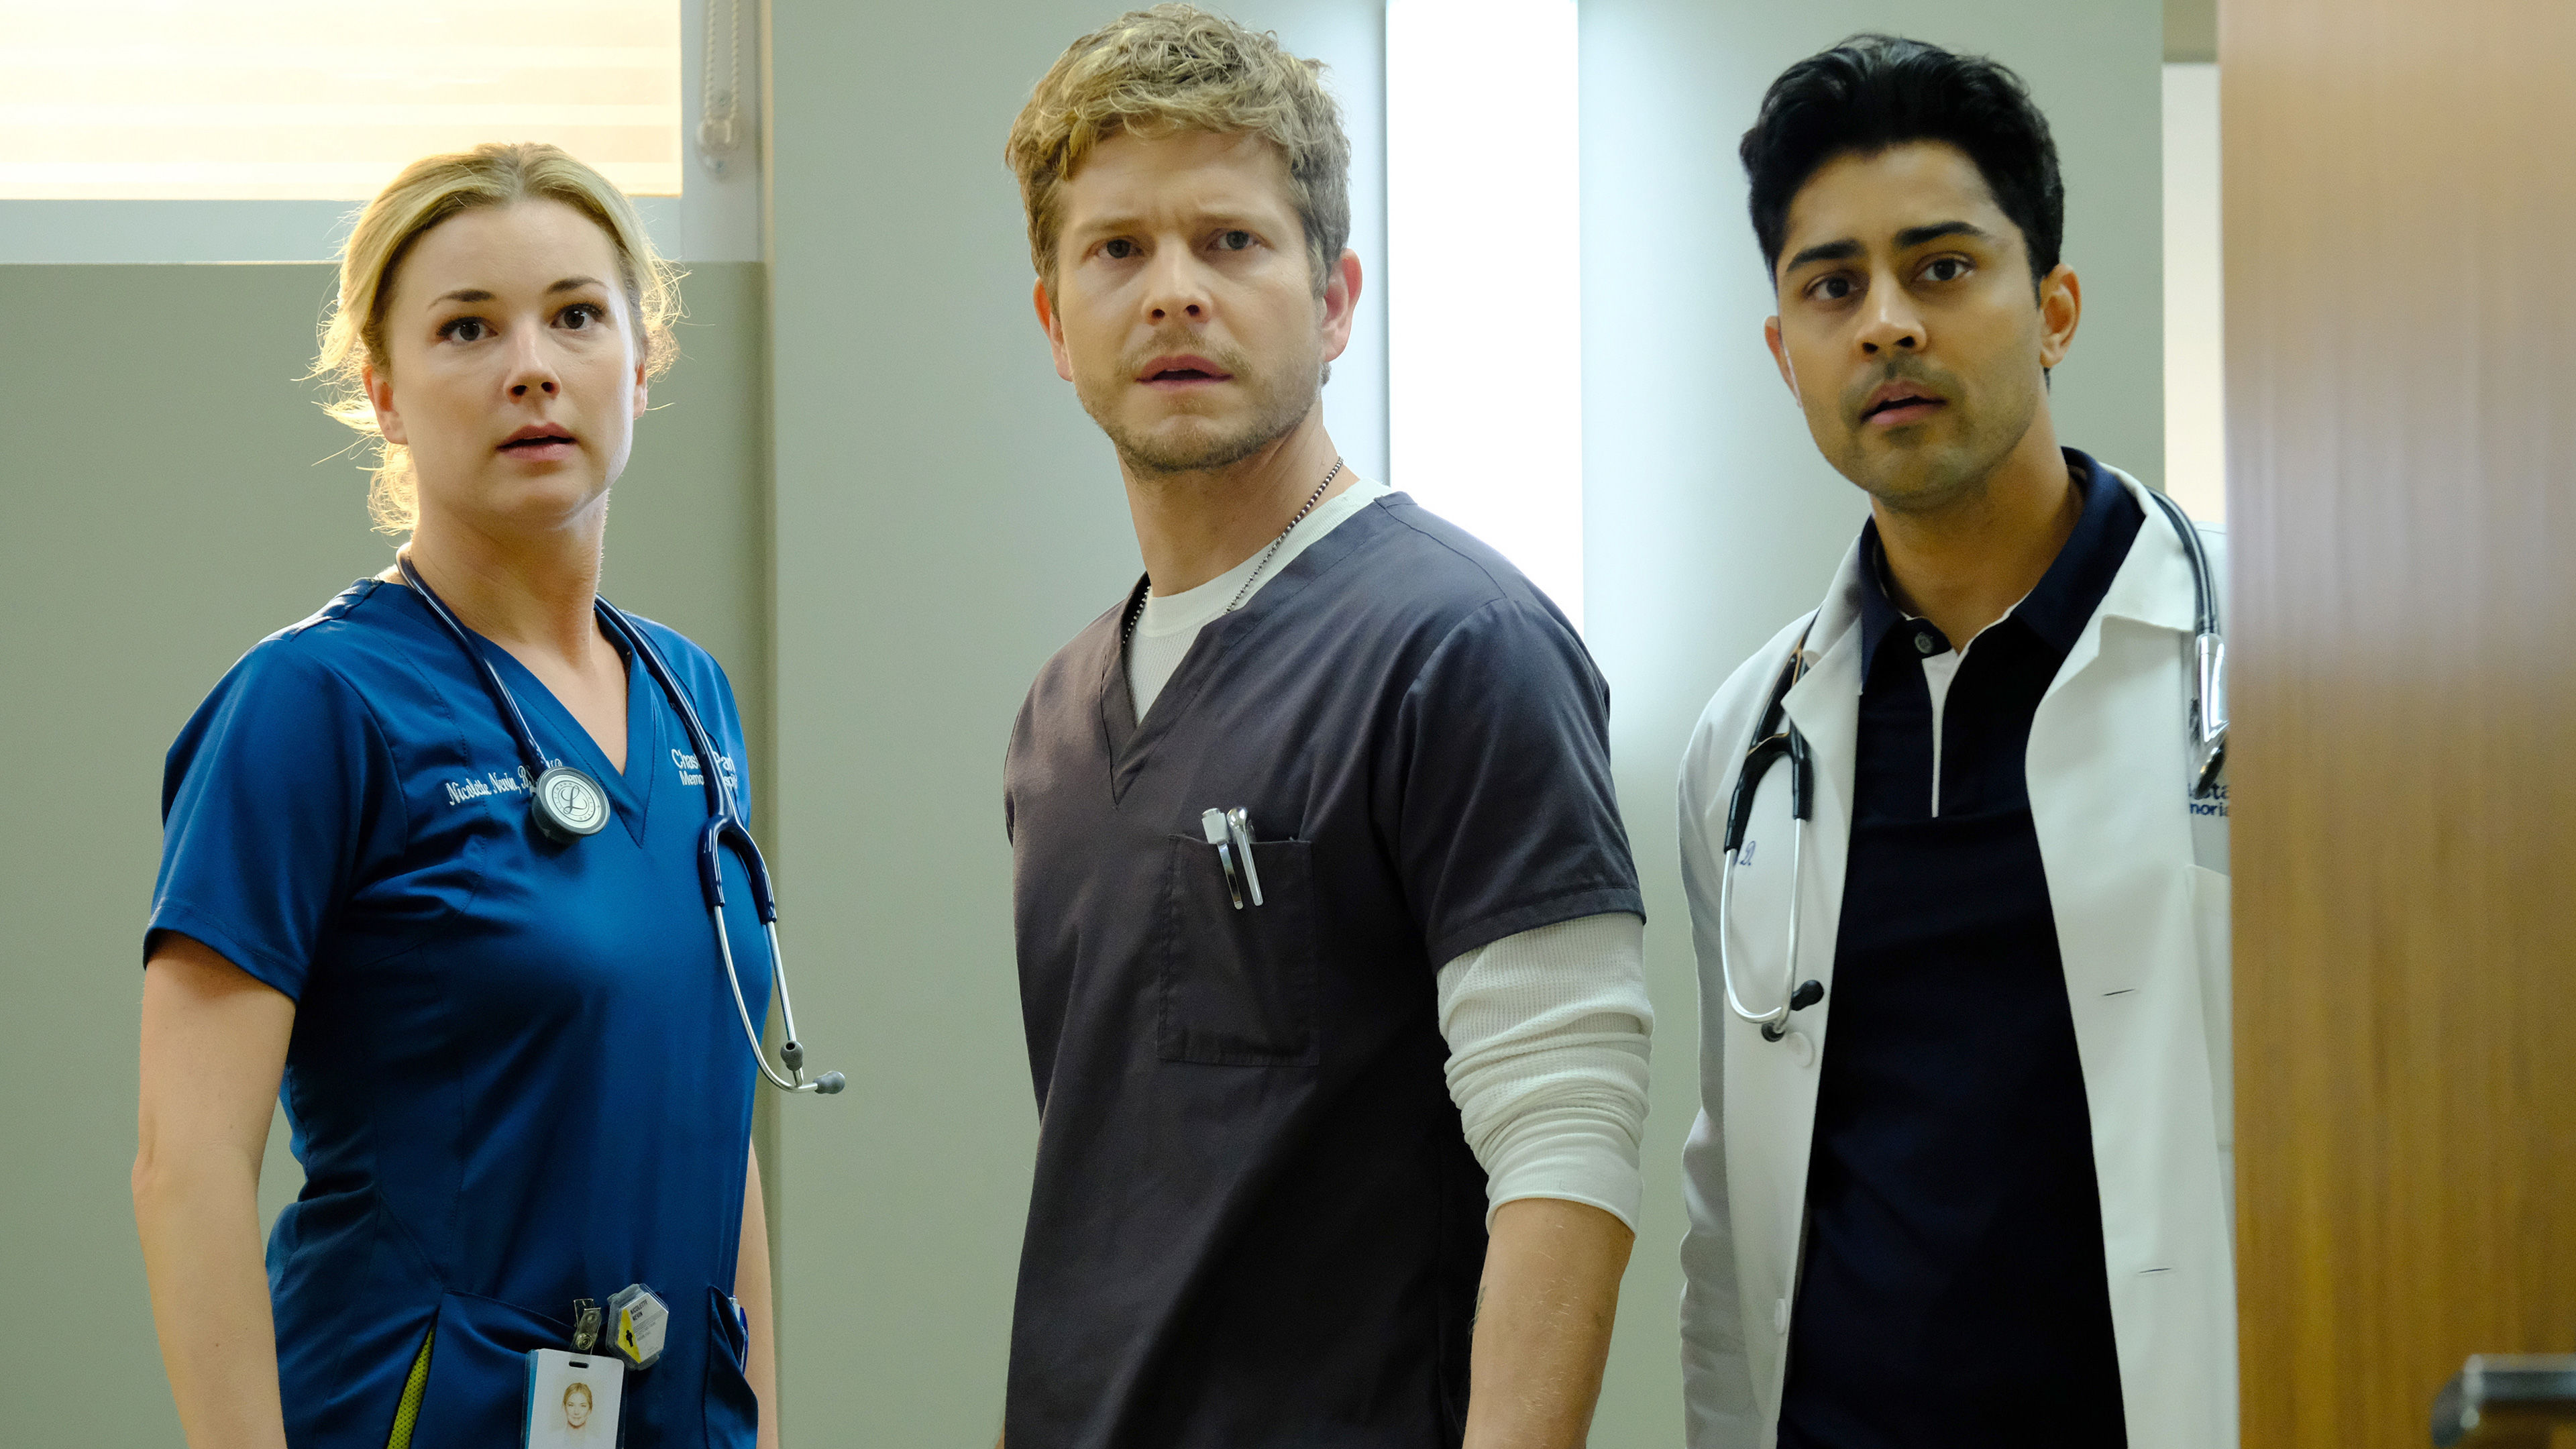 The Resident S1E3 Comrades in Arms